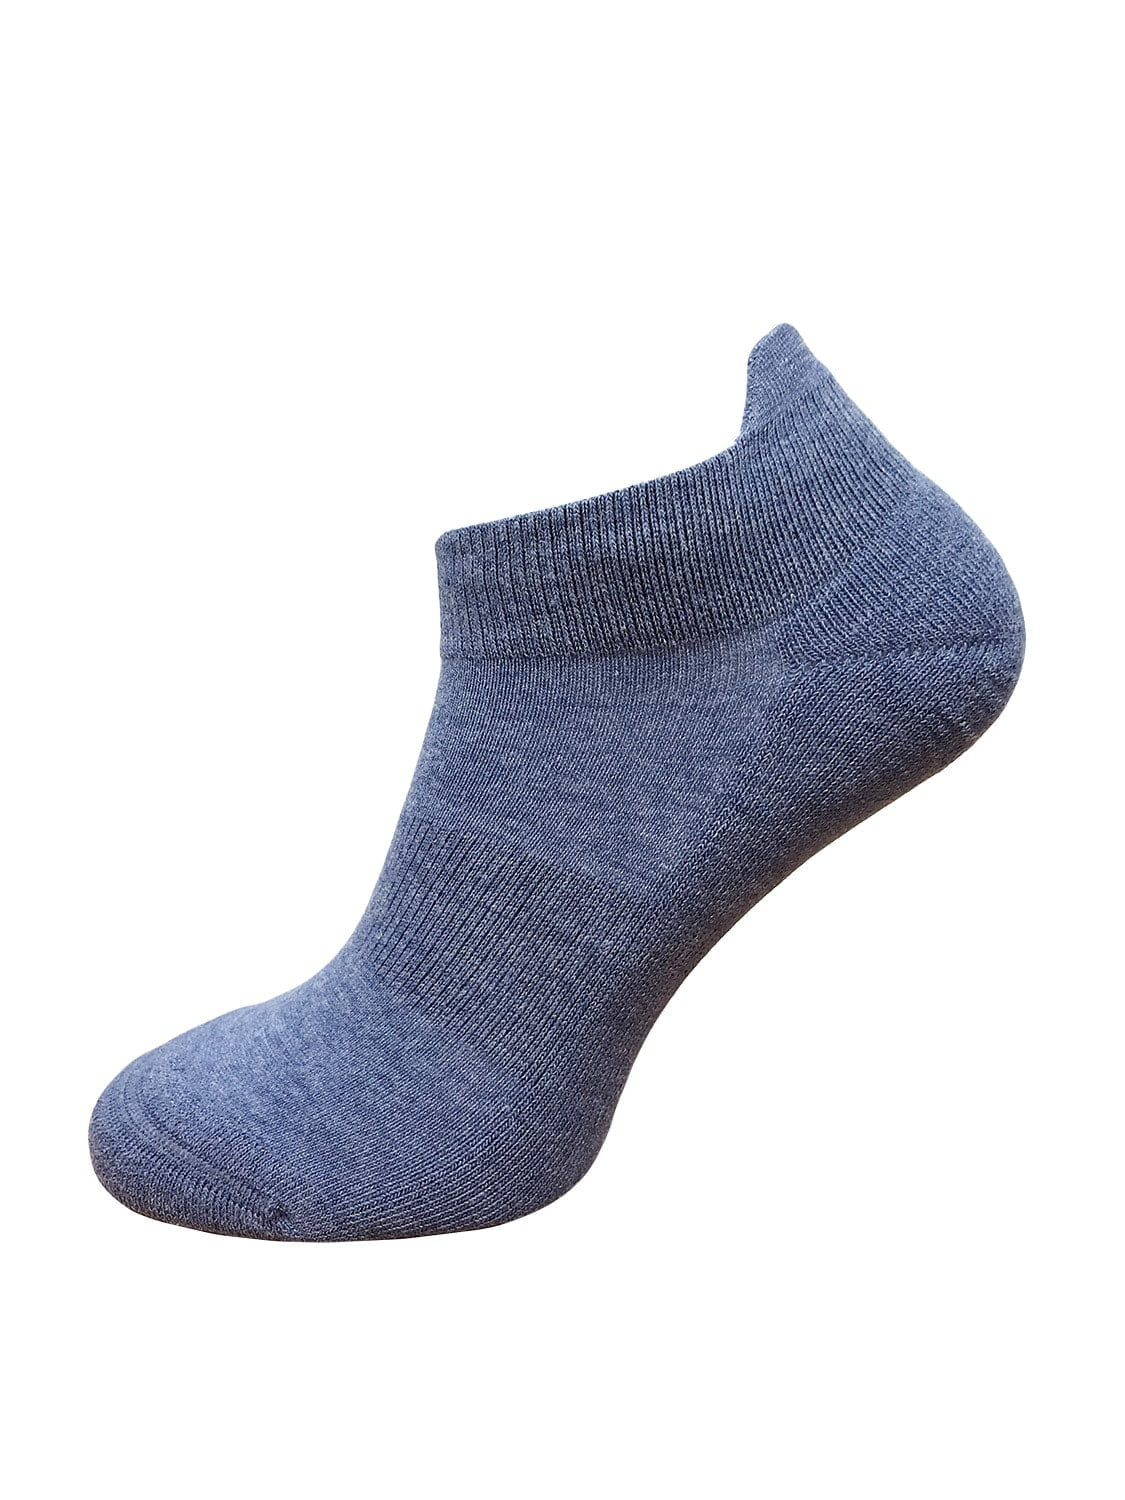 ankle socks blue cushioned heel and sole gentle elasticated top for a better fit